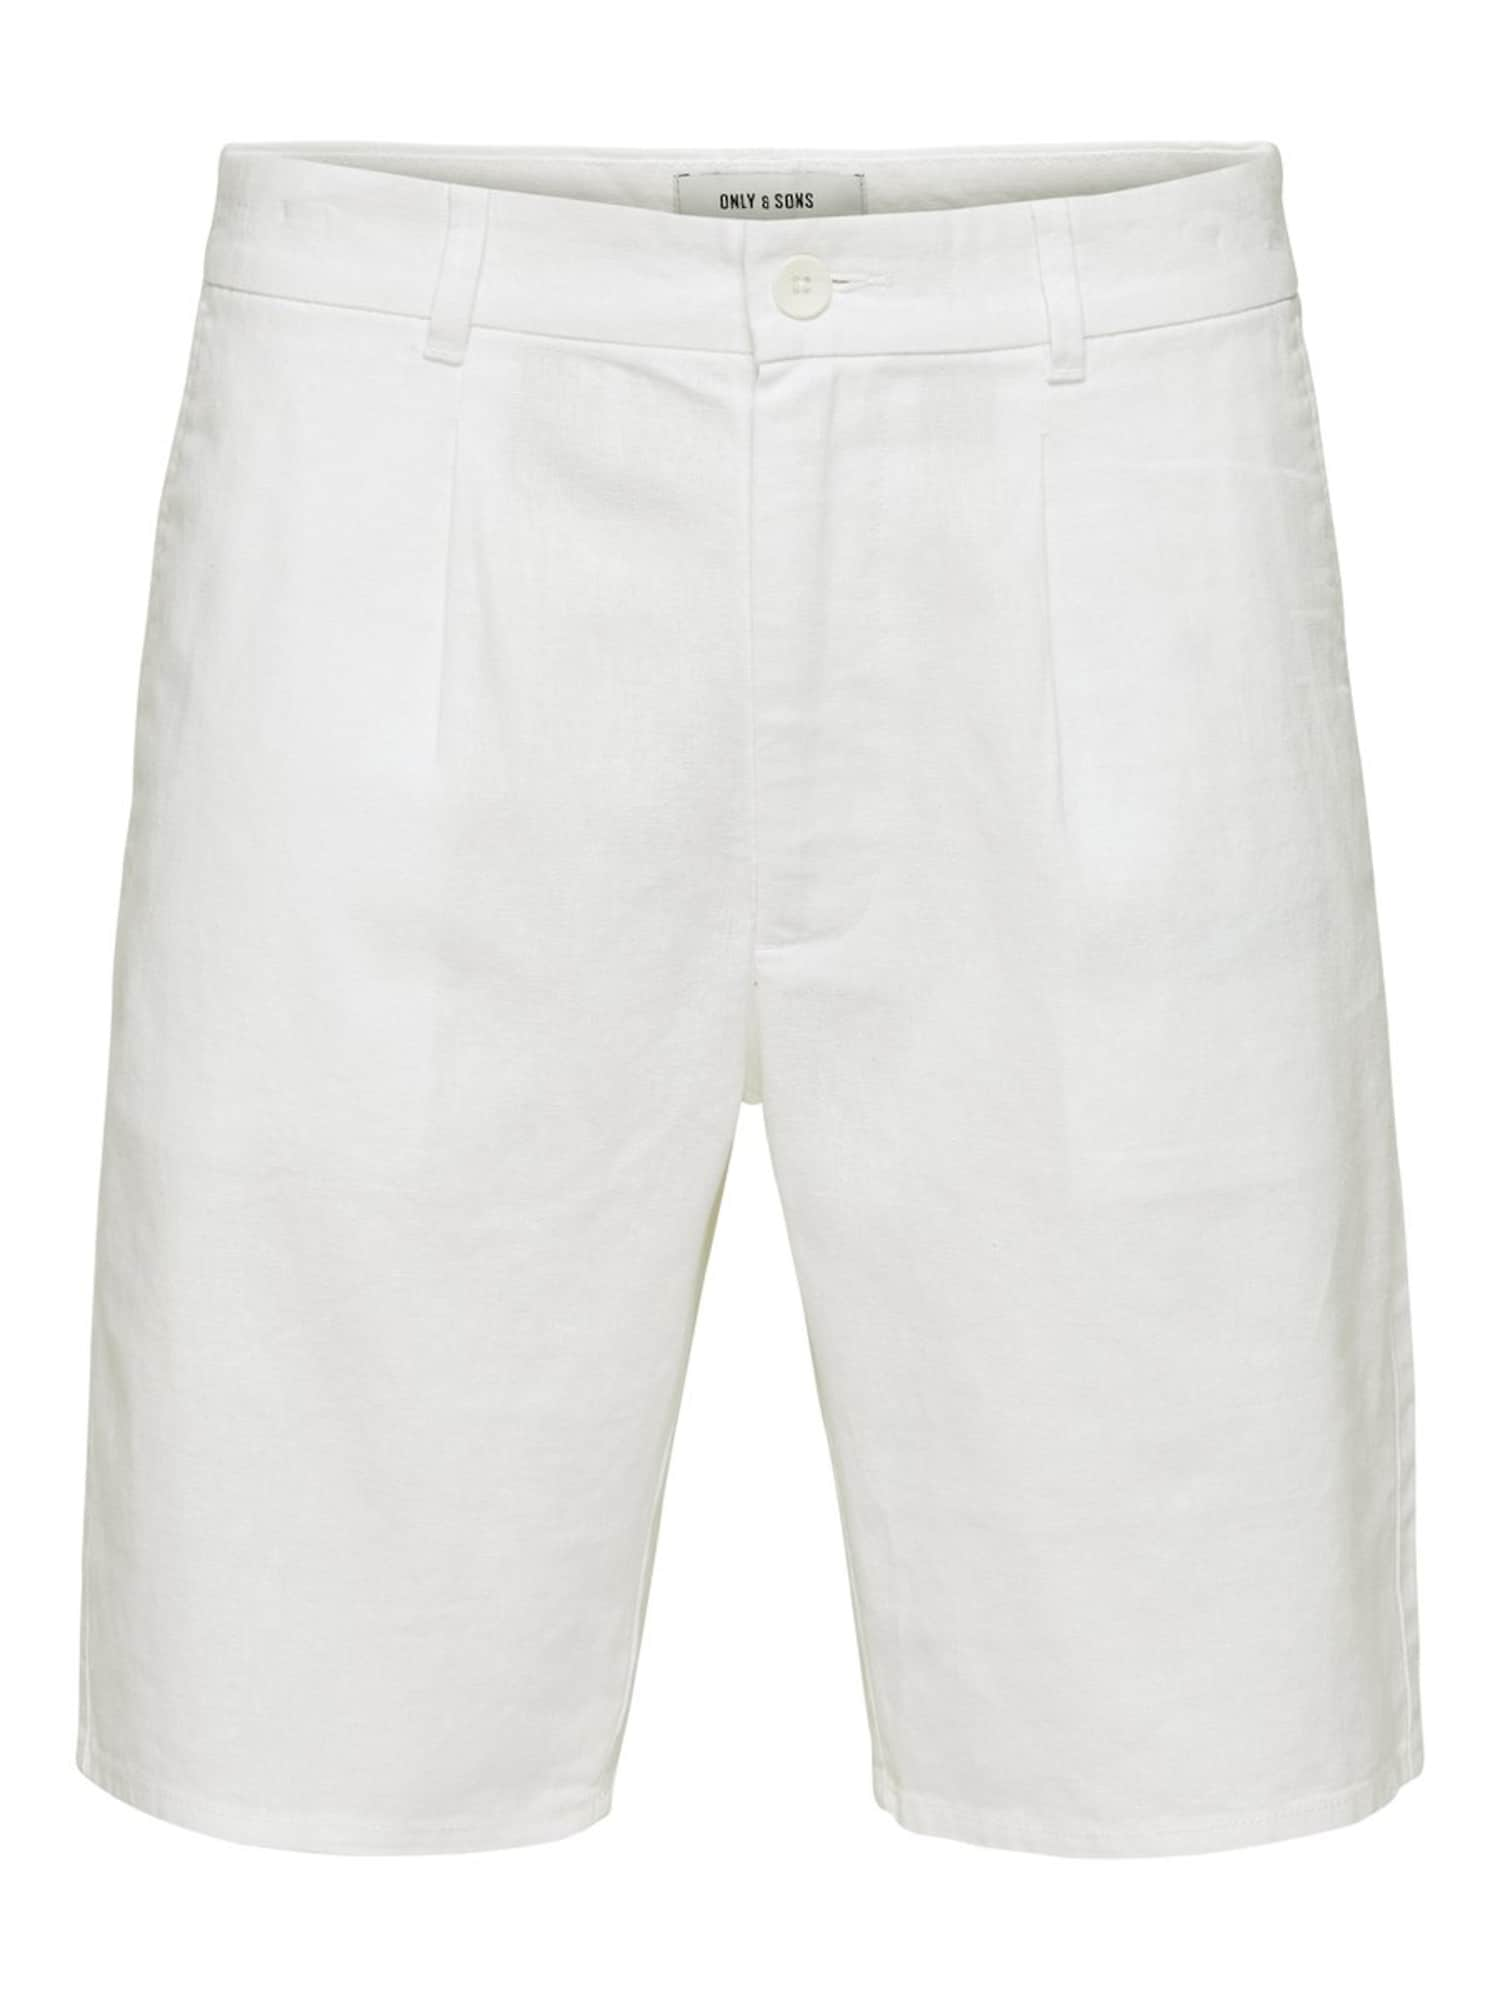 "Only & Sons ""Chino"" stiliaus kelnės balta"